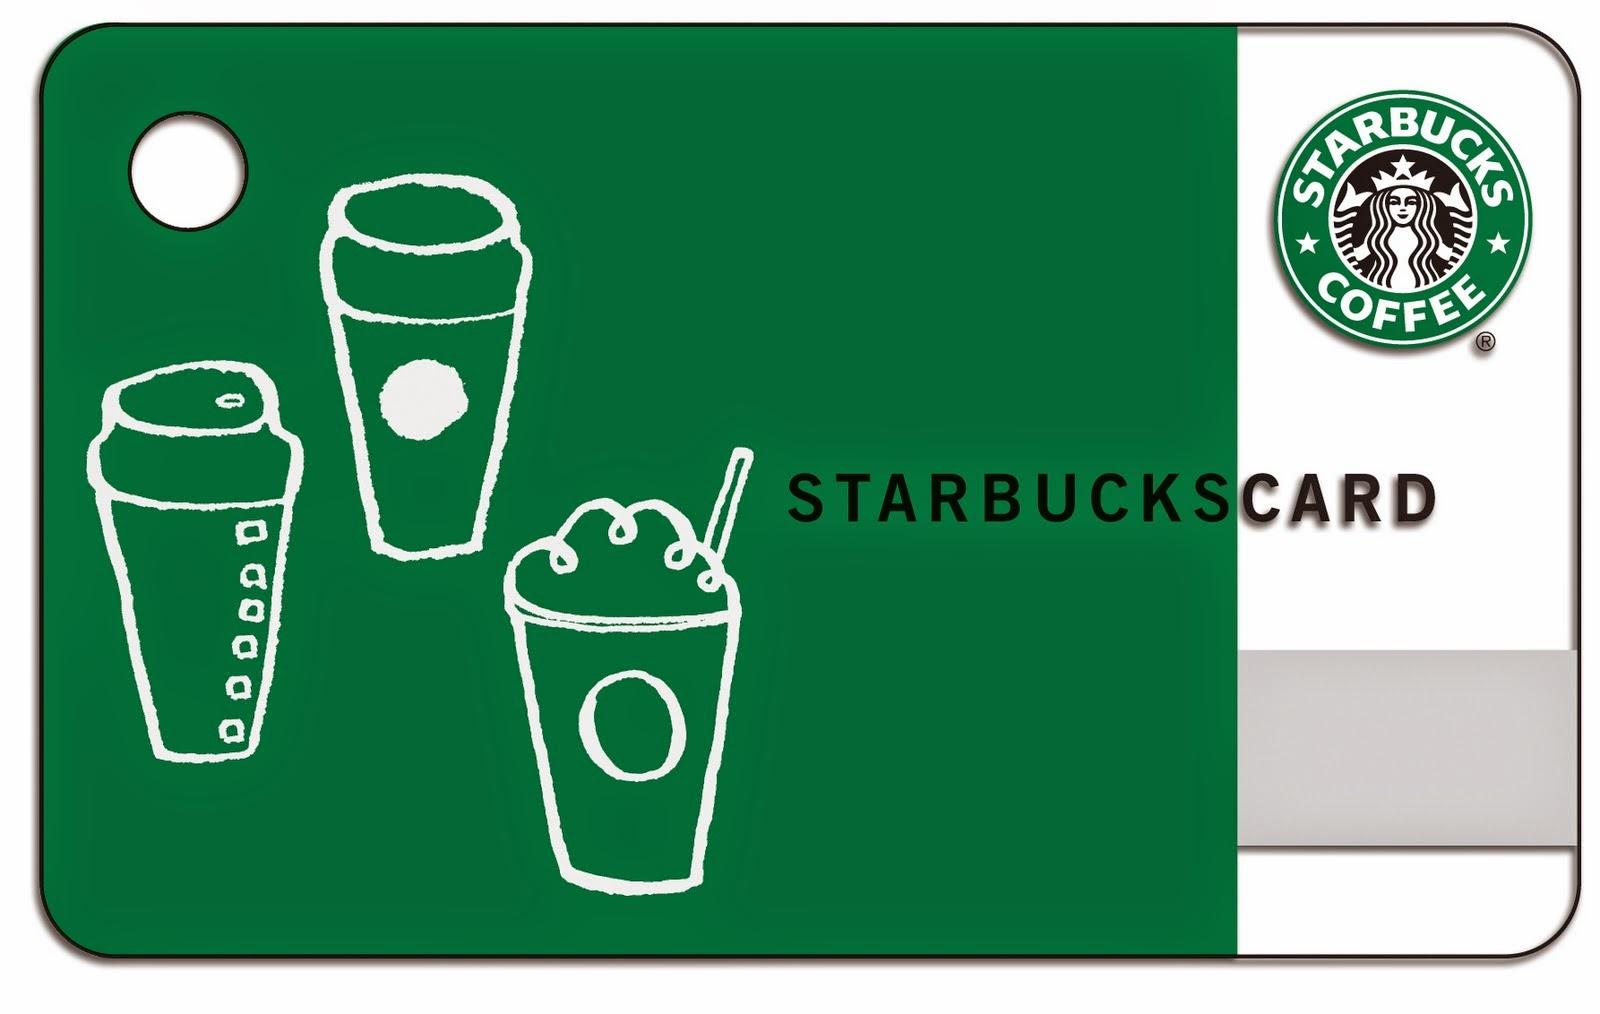 C:\Users\chinh\Desktop\chien-luoc-marketing-cua-Starbucks-Gift Card.jpg